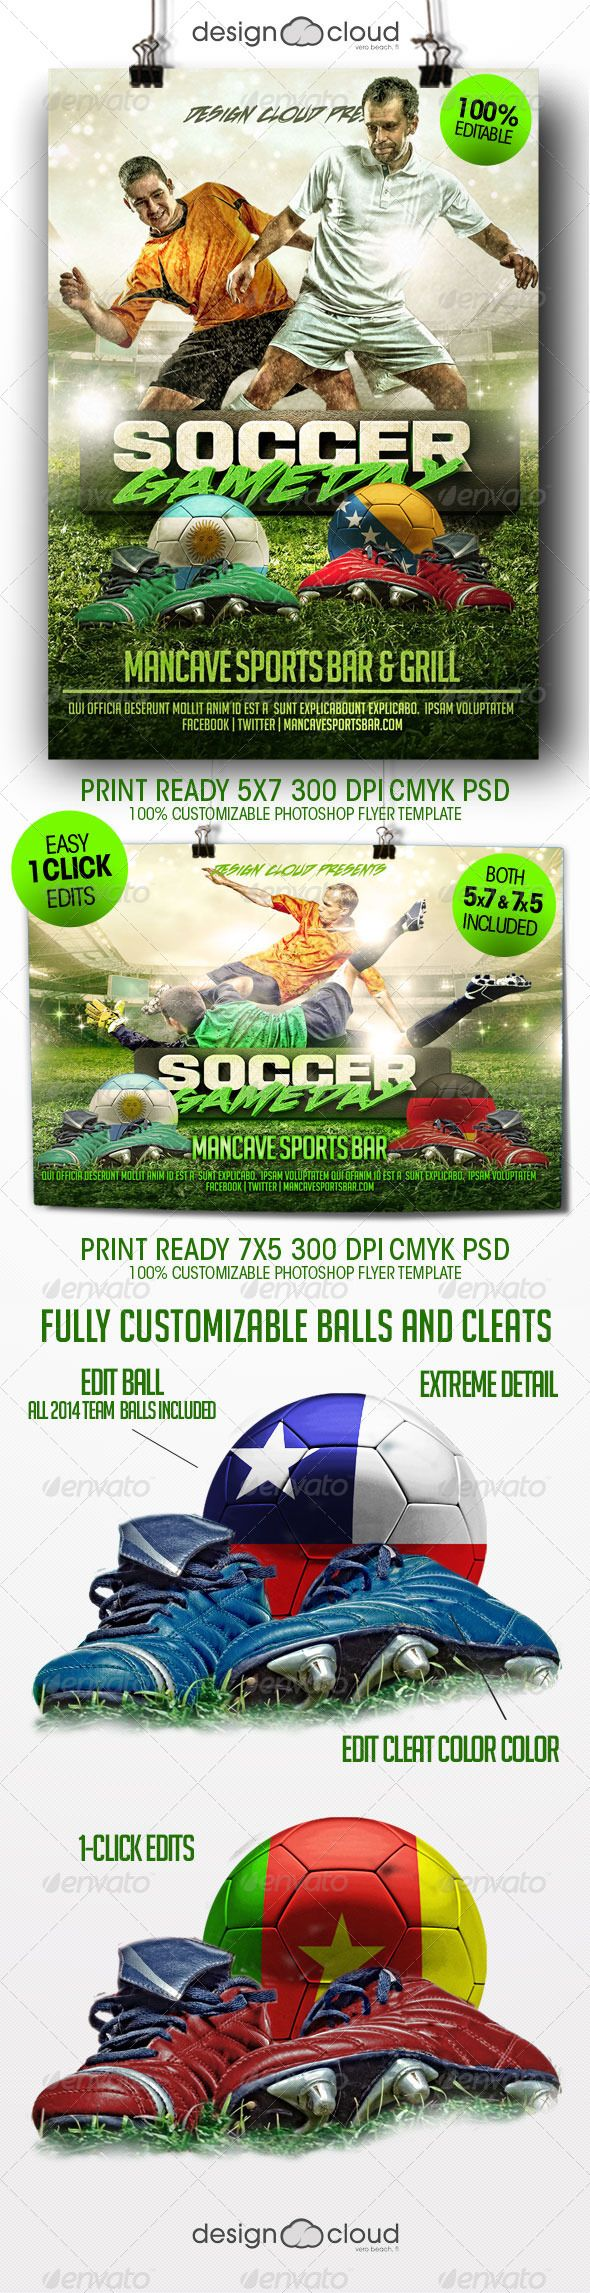 Soccer Game Day Flyer Template  Soccer Games Flyer Template And